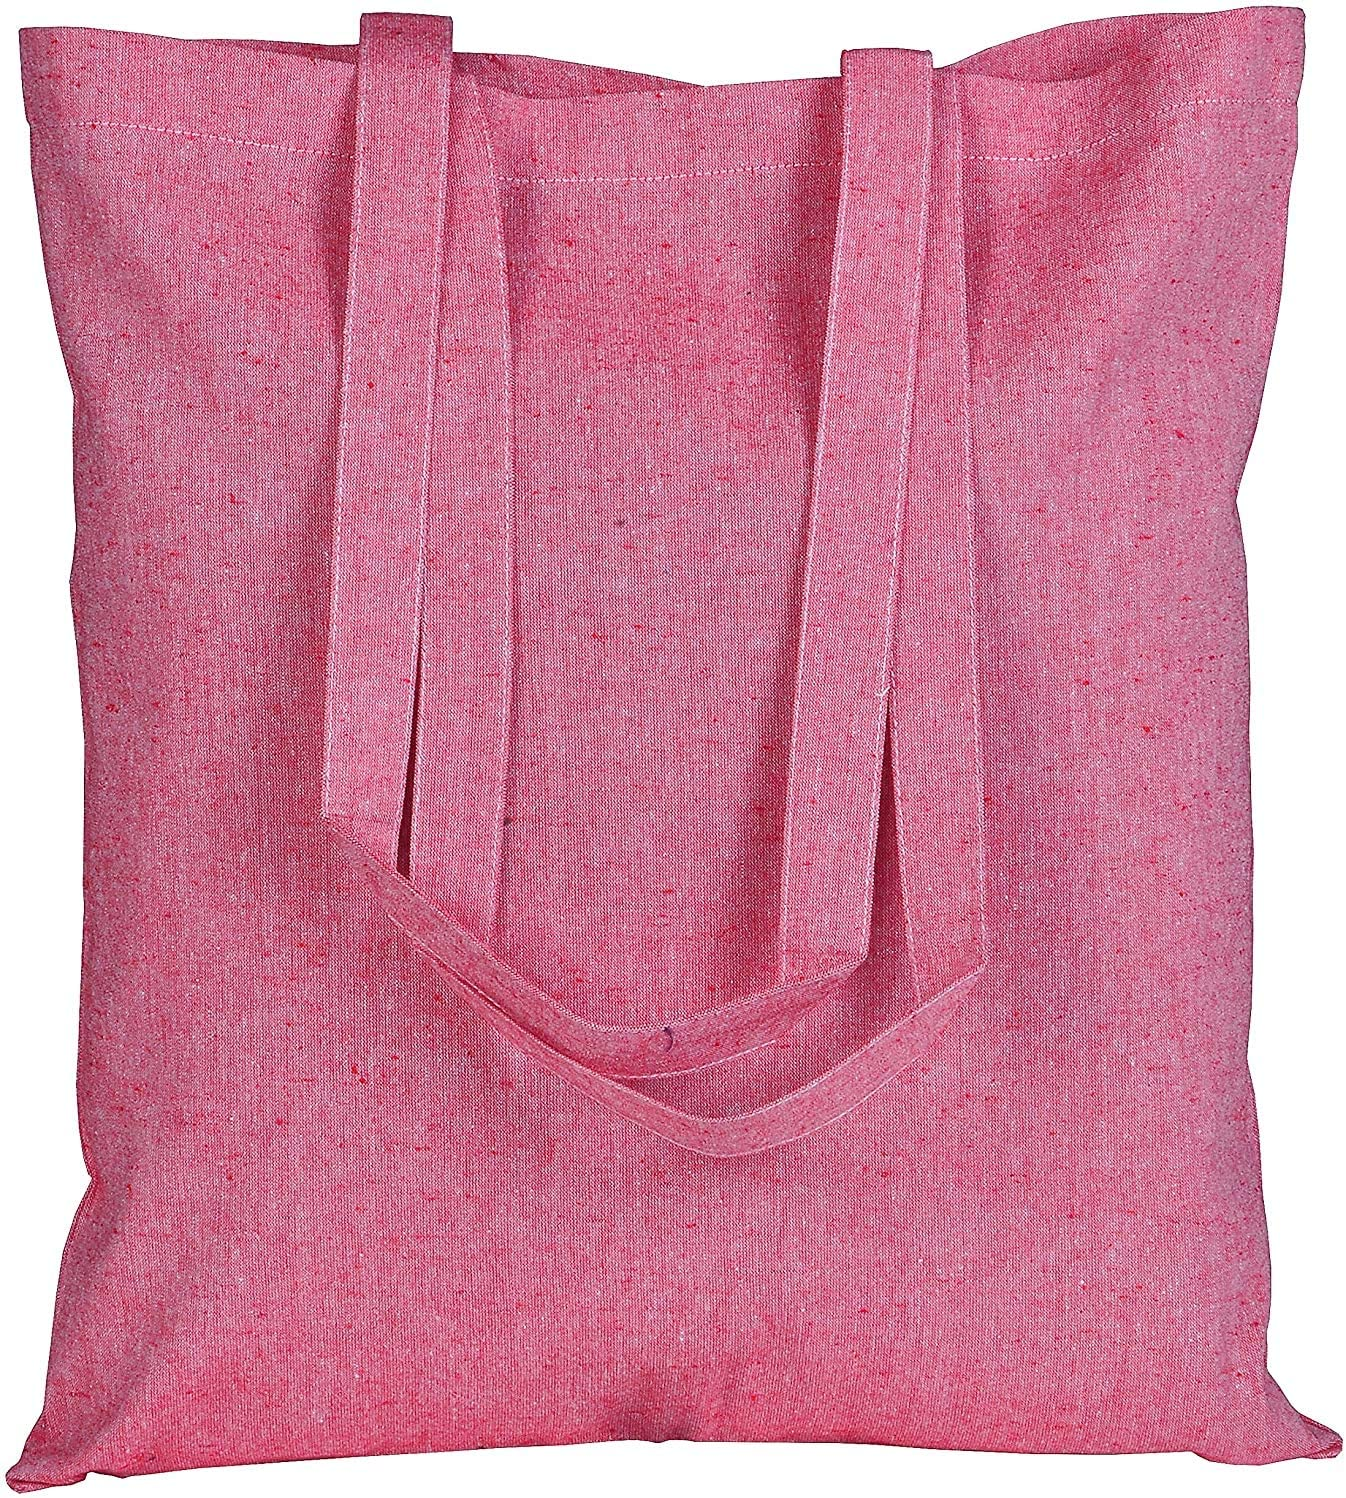 ECOFACTORYDIRECT 200 Pack ROSE PINK Cotton Color 15 Recycled We OFFer at cheap Spasm price prices Bag